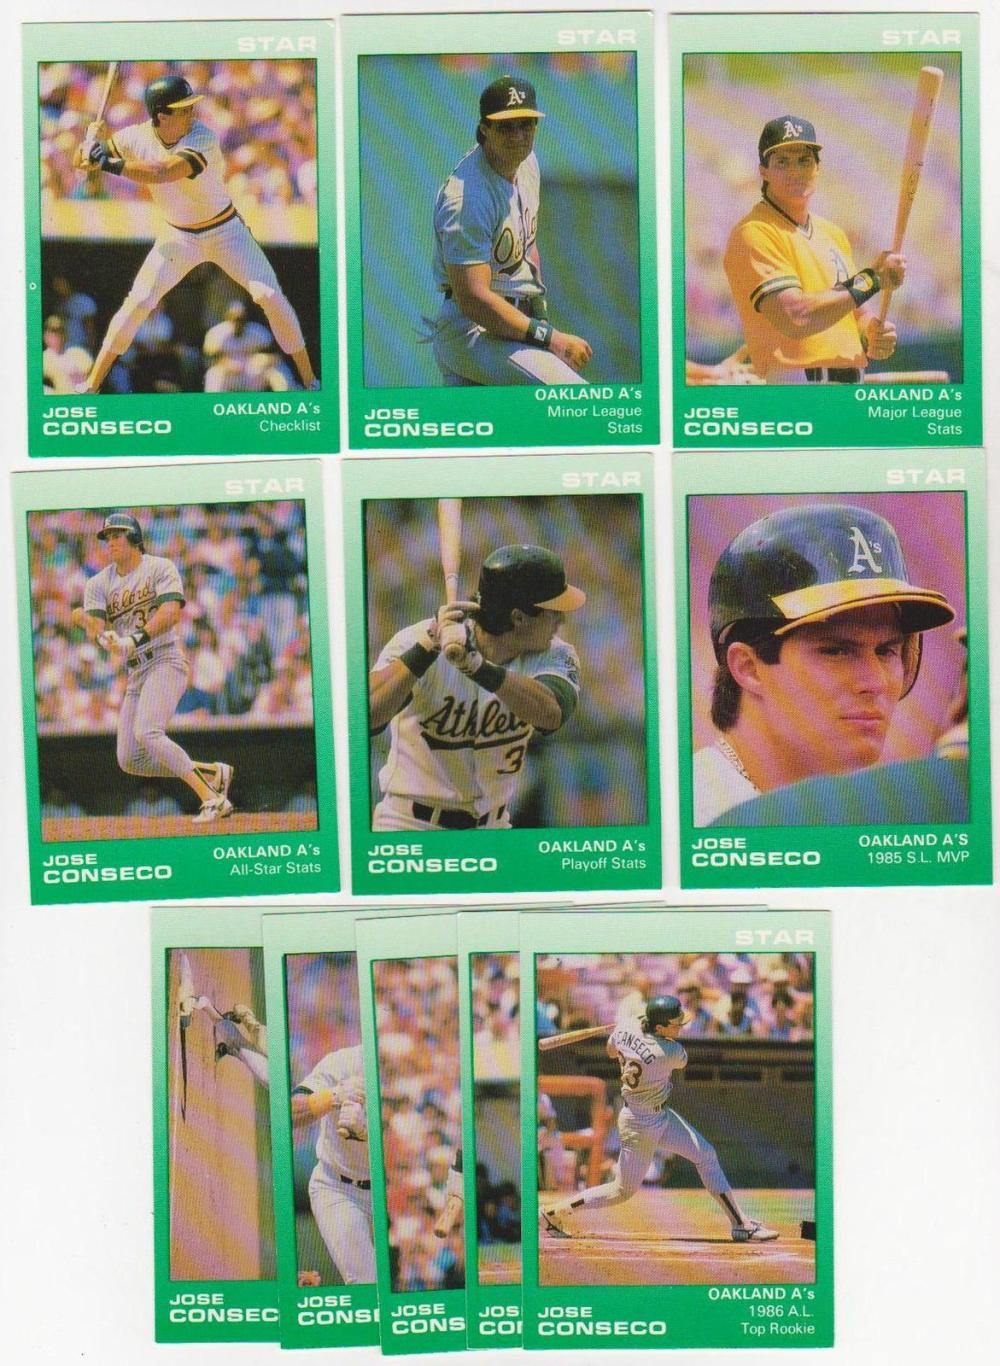 1988 Star Jose Canseco 11 card ERROR SET - Jose Conseco Front - Rare Set